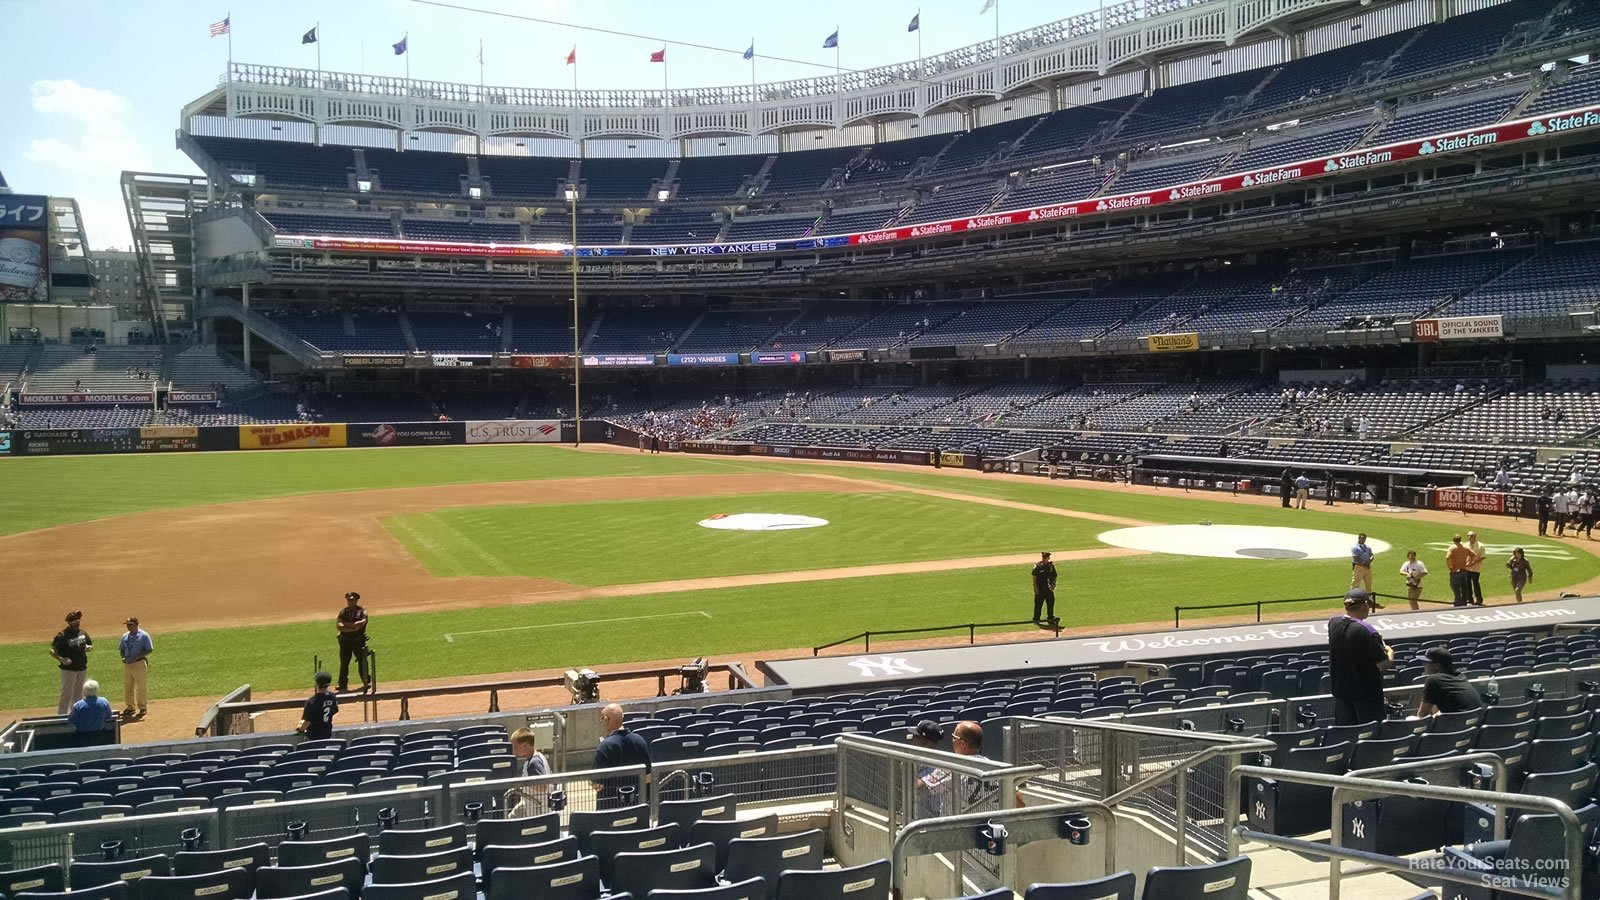 New York Yankees Seat View for Yankee Stadium Section 125, Row 11